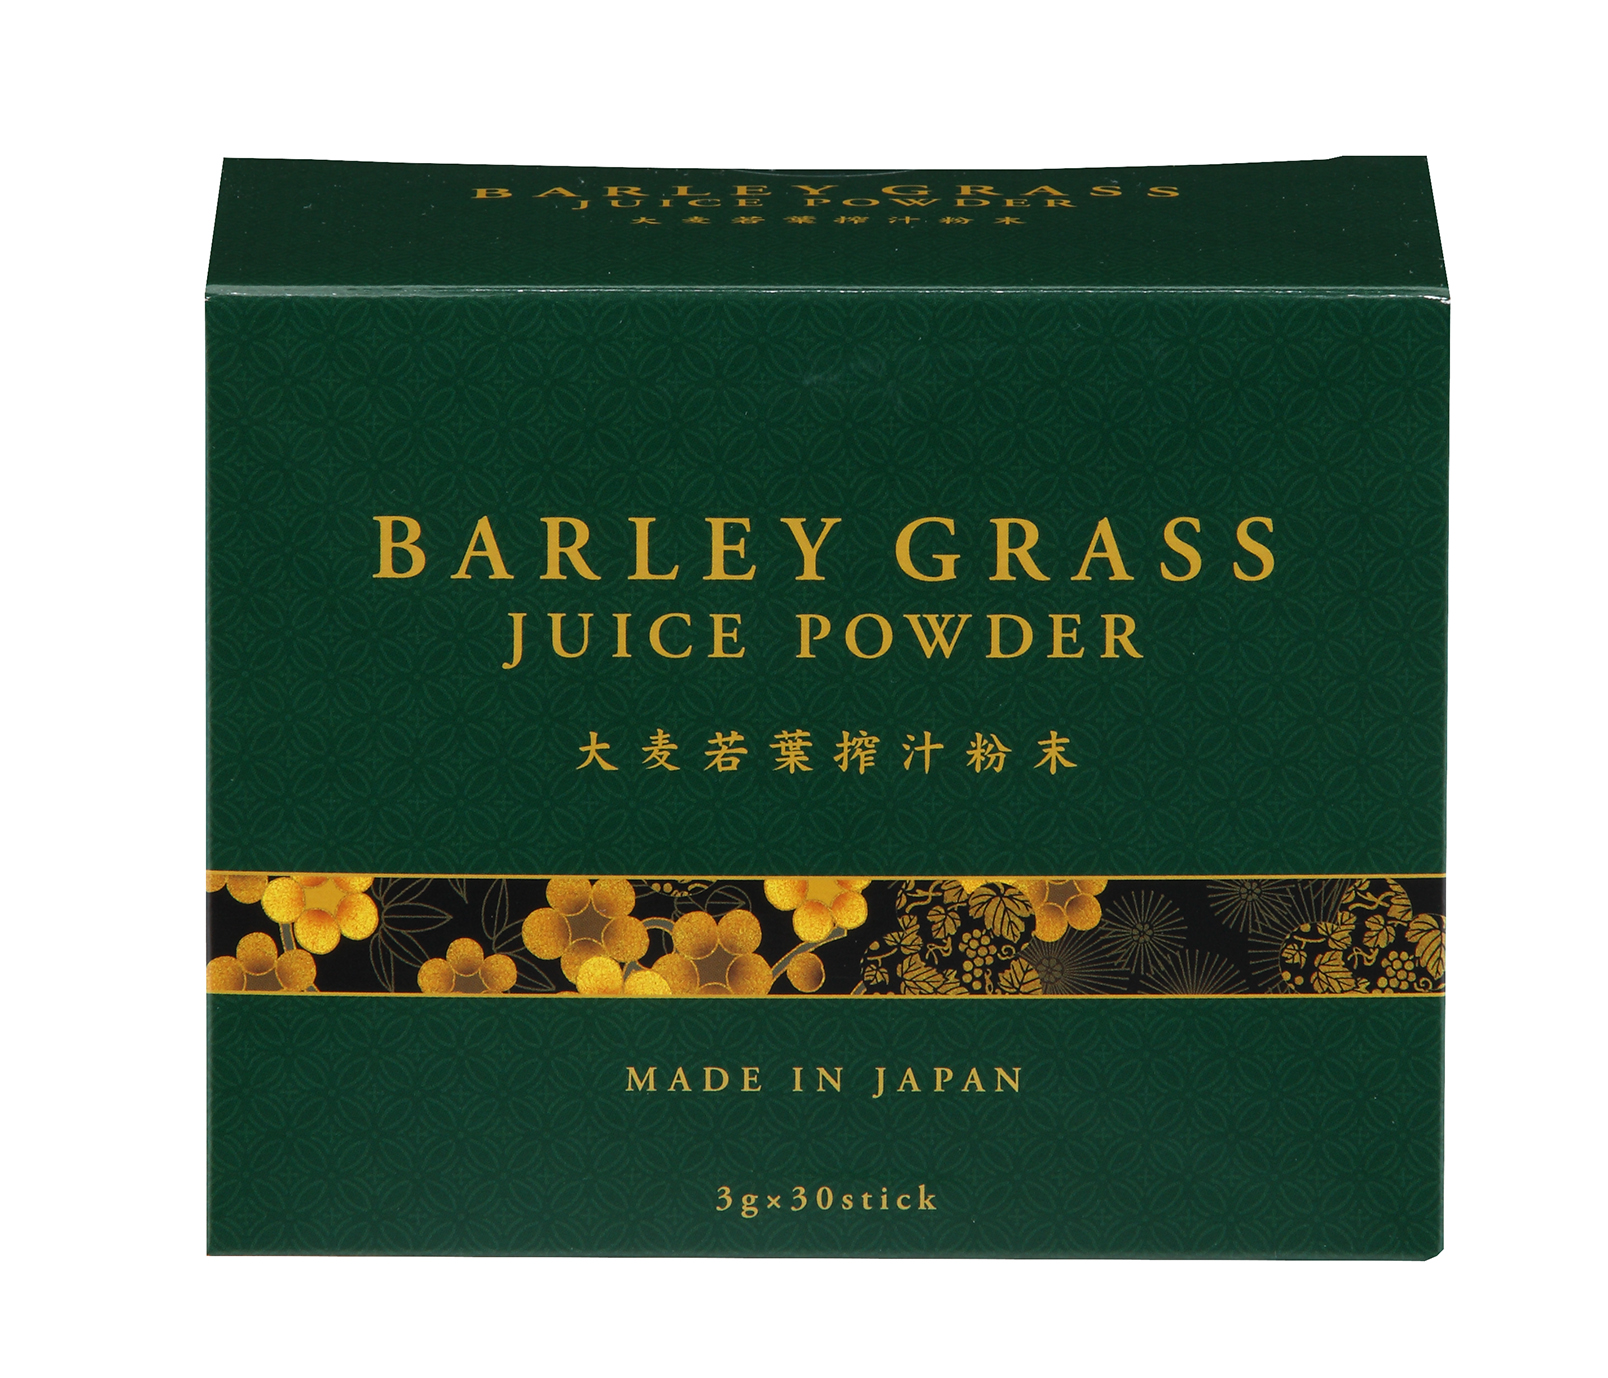 Japan easily absorbable smooth taste organic barley leaf powder for enriches daily habit